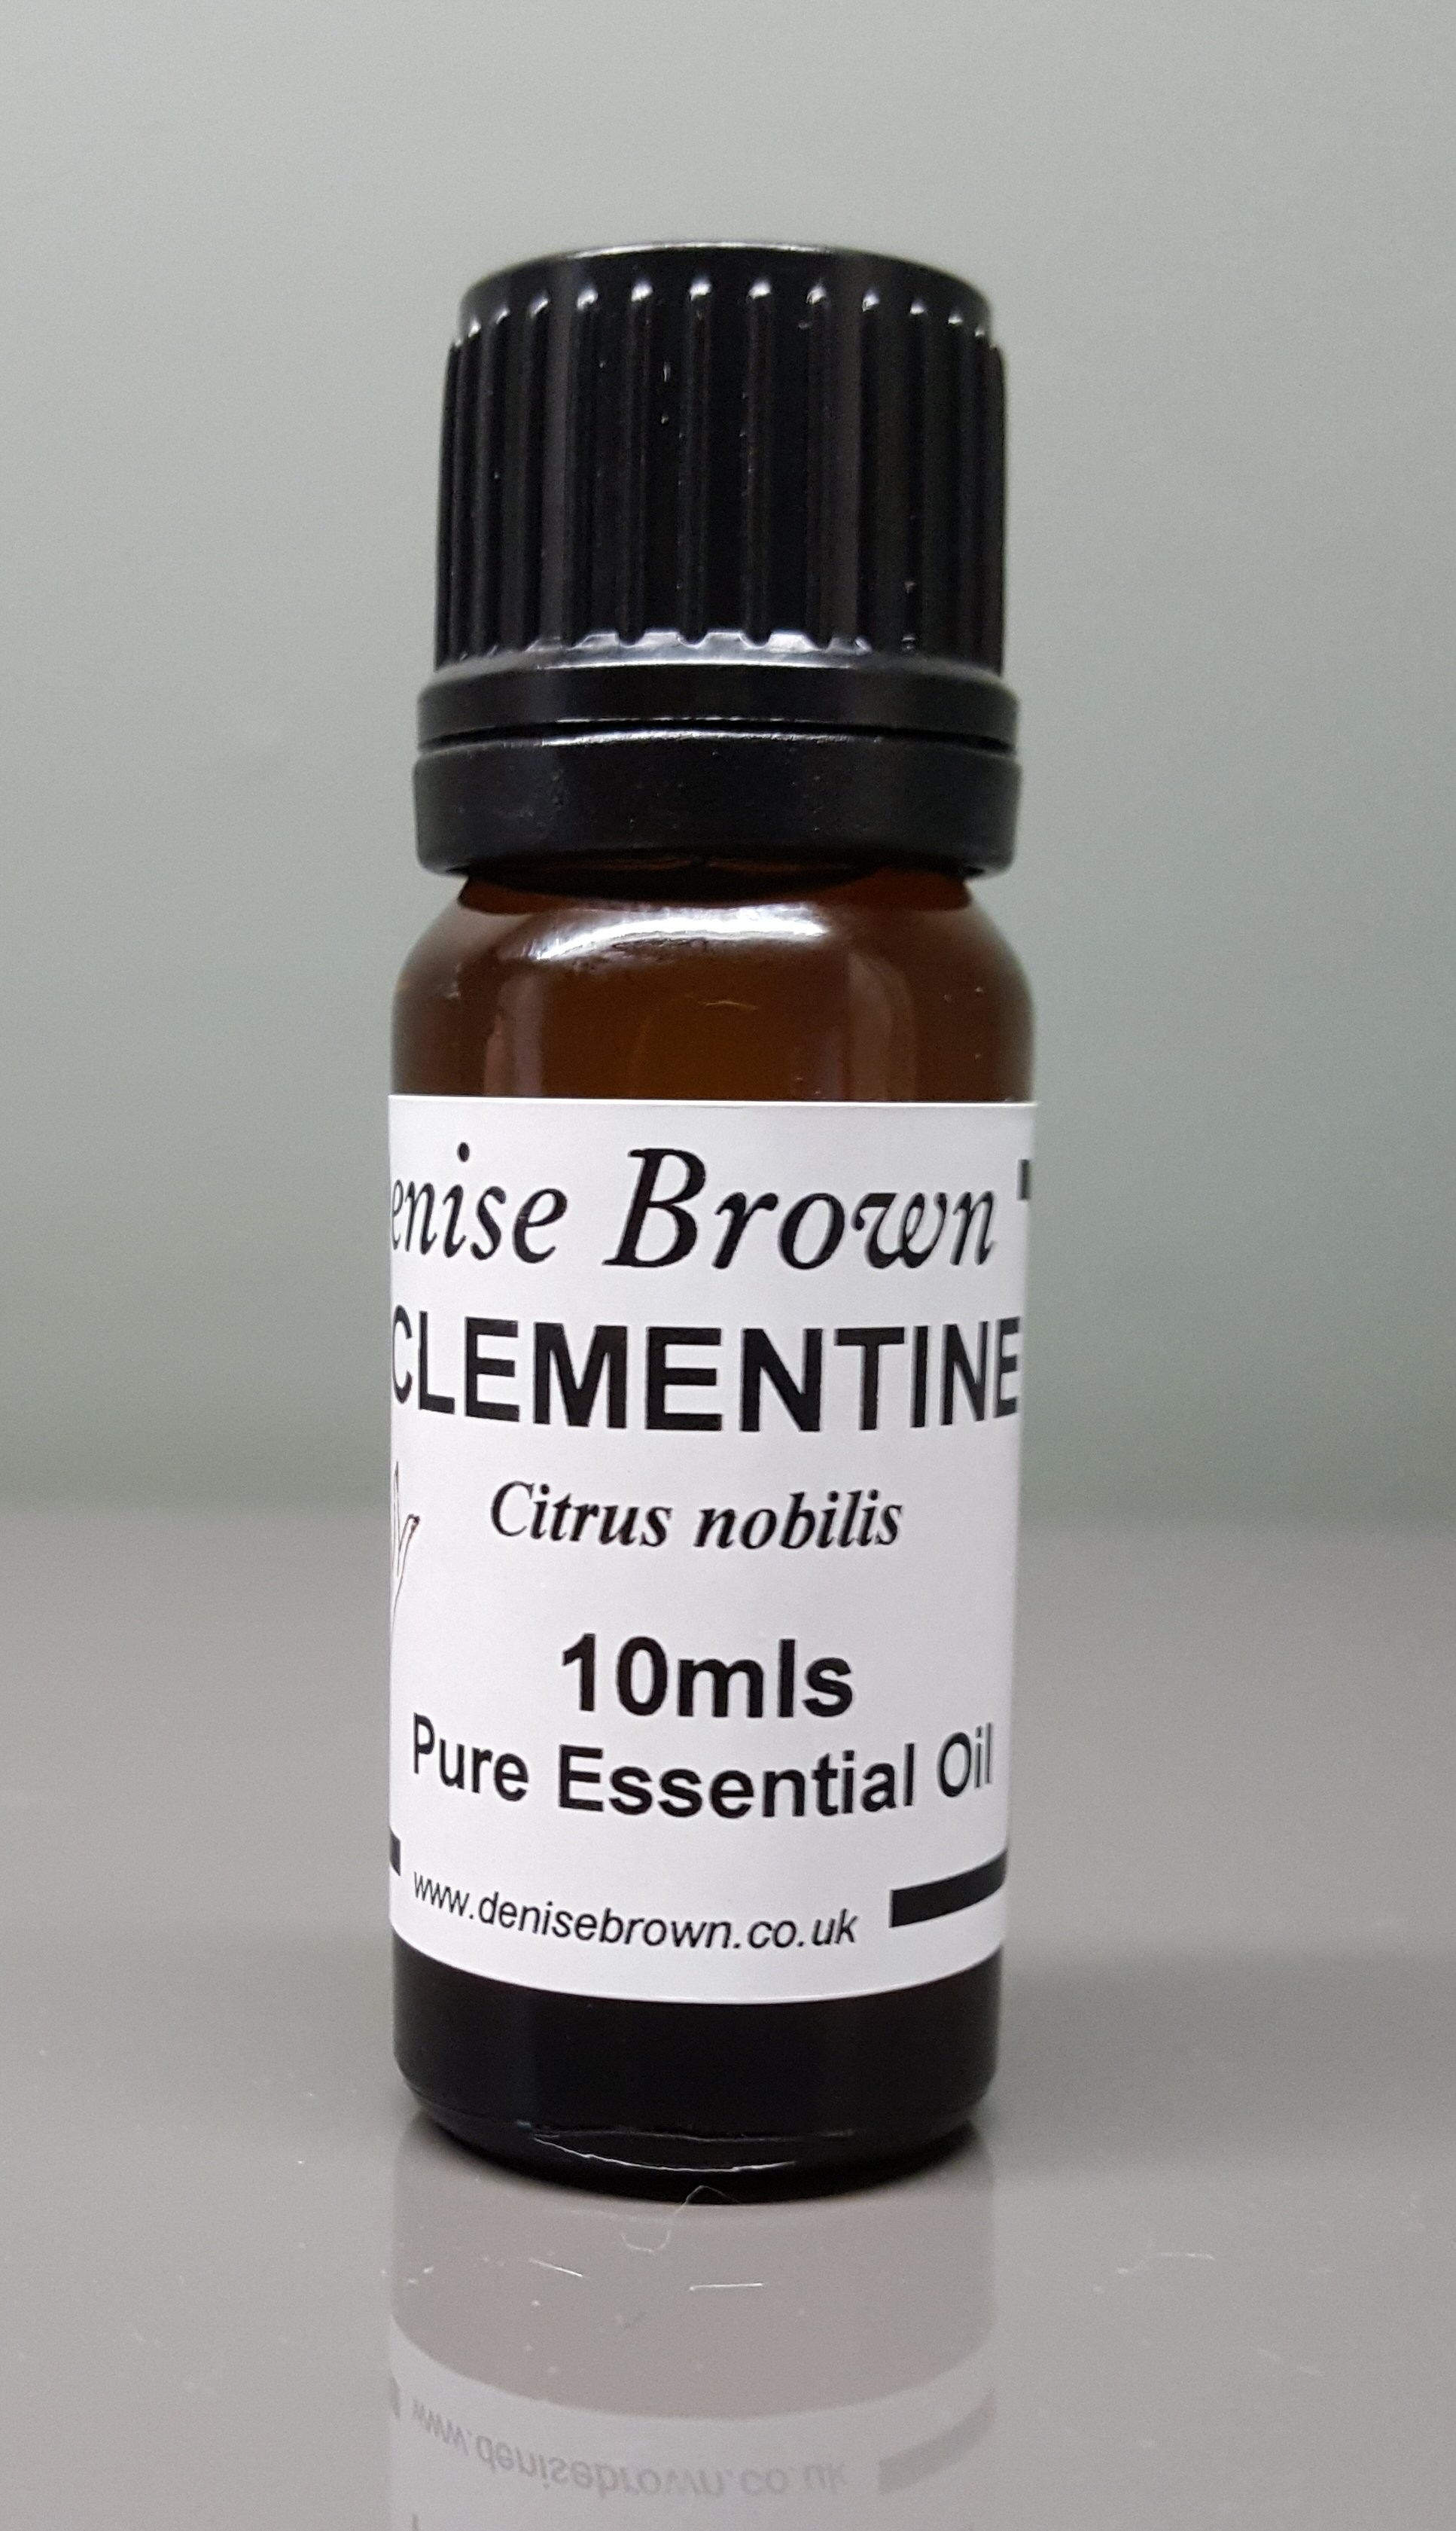 Clementine (10mls) Essential Oil